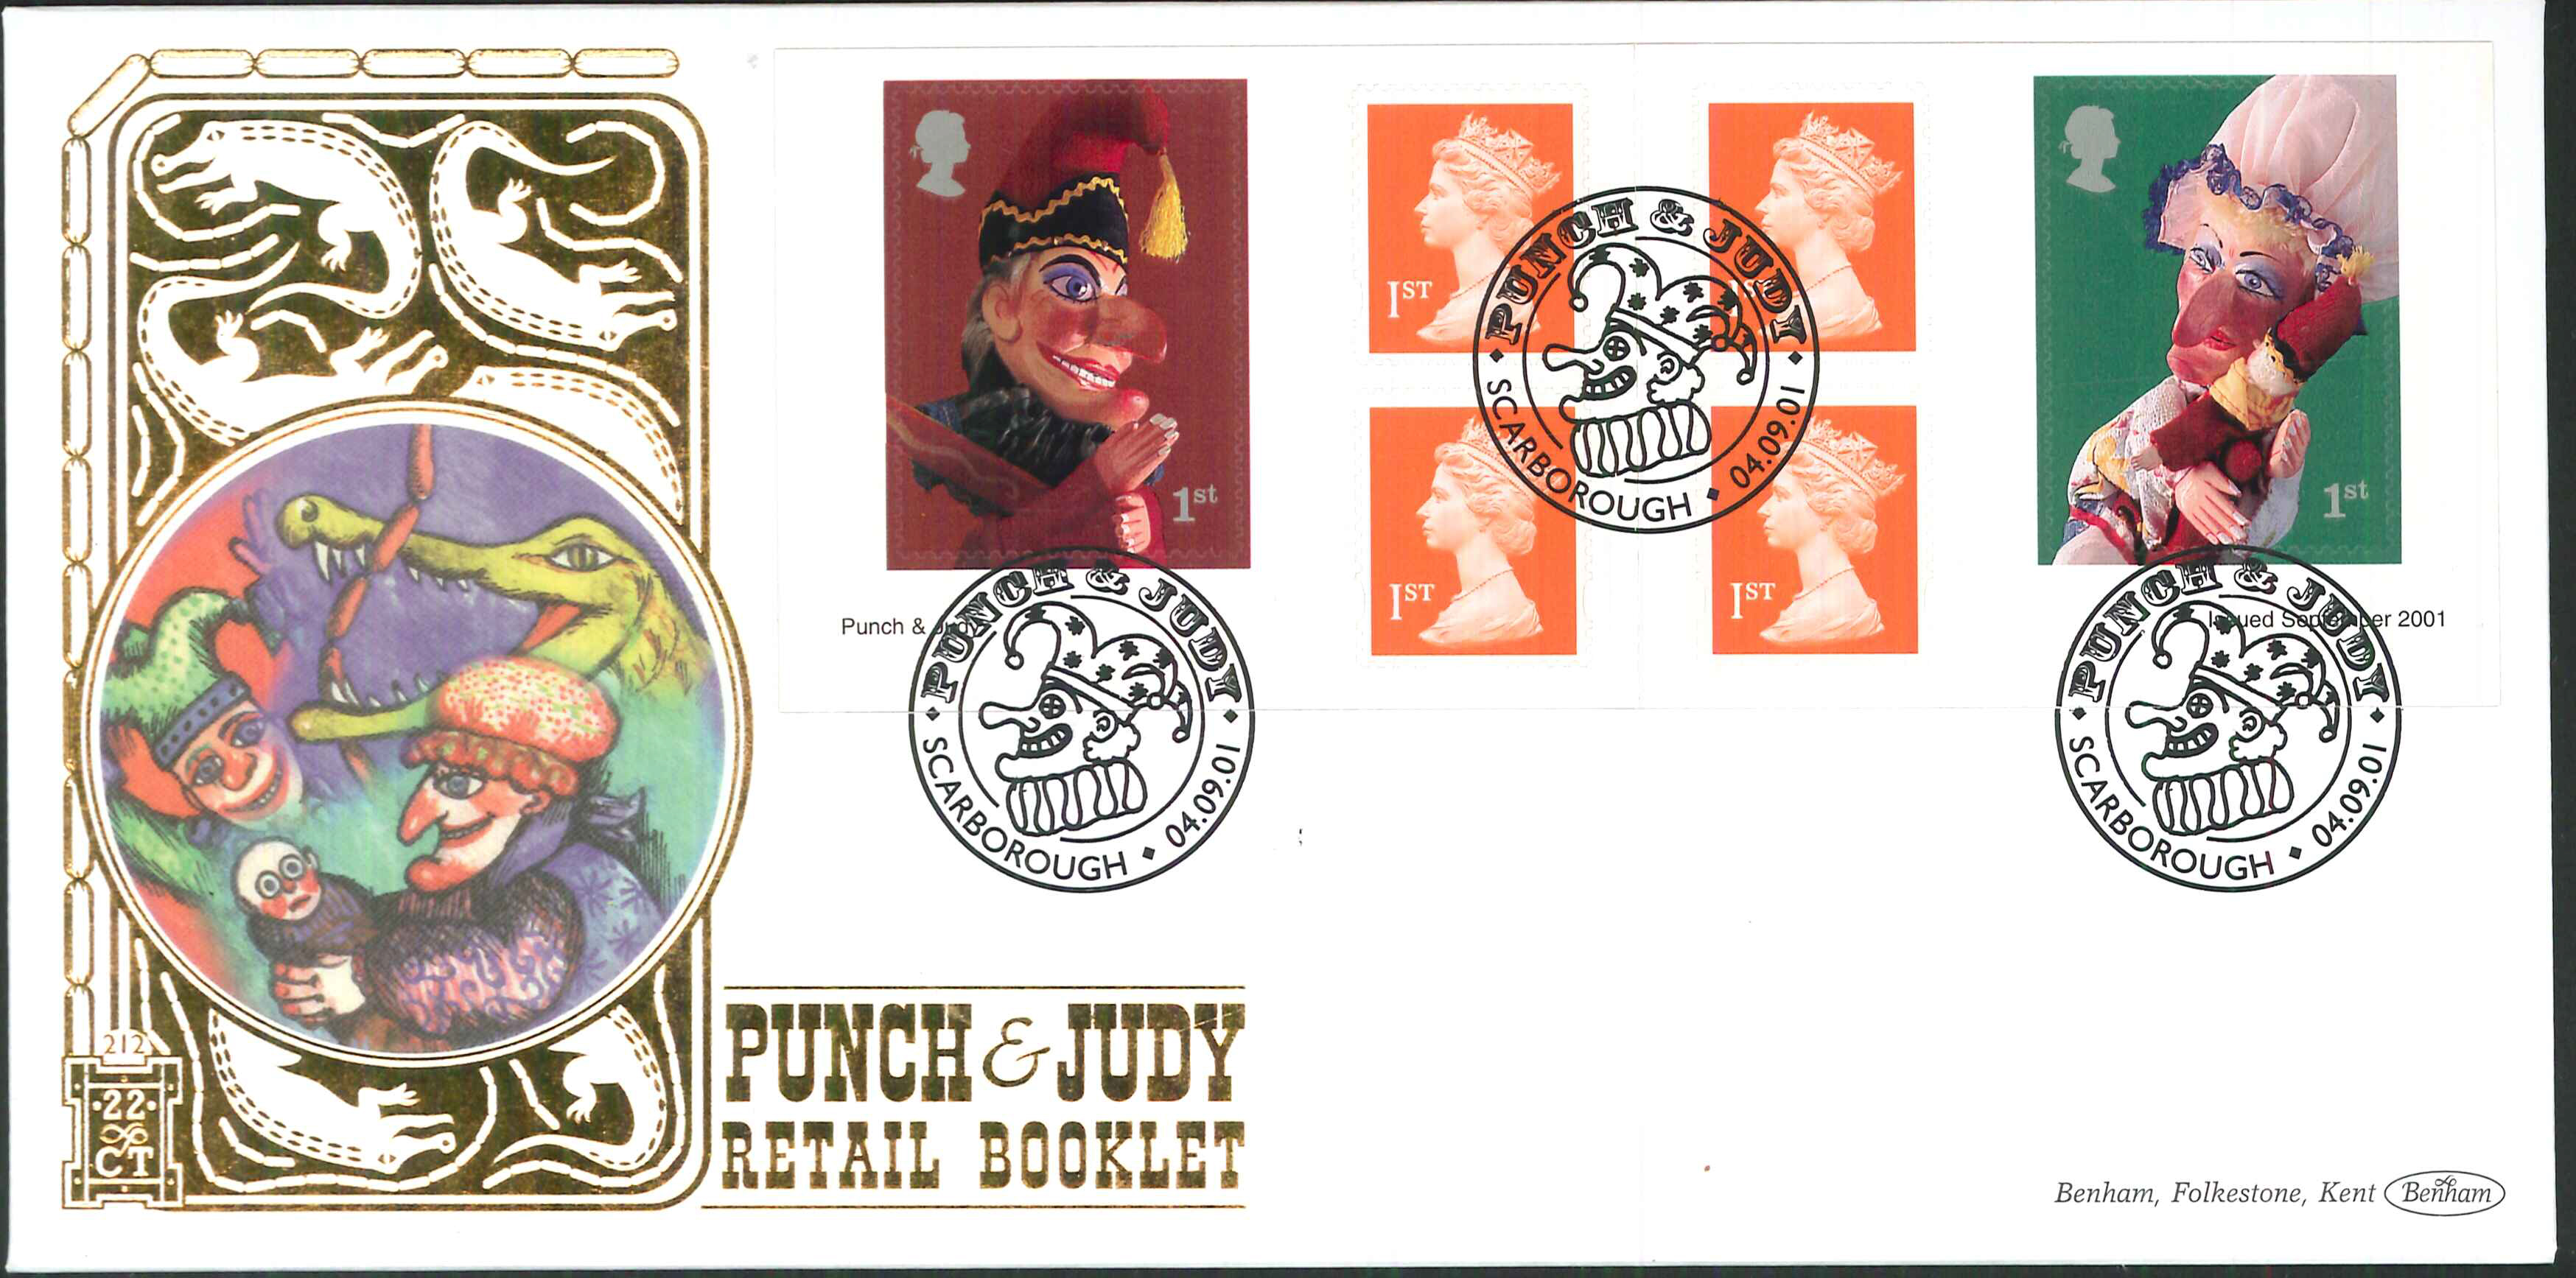 2001 - Punch & Judy Retail Book FDC Benham 22ct Gold 500 - Scarborough Postmark